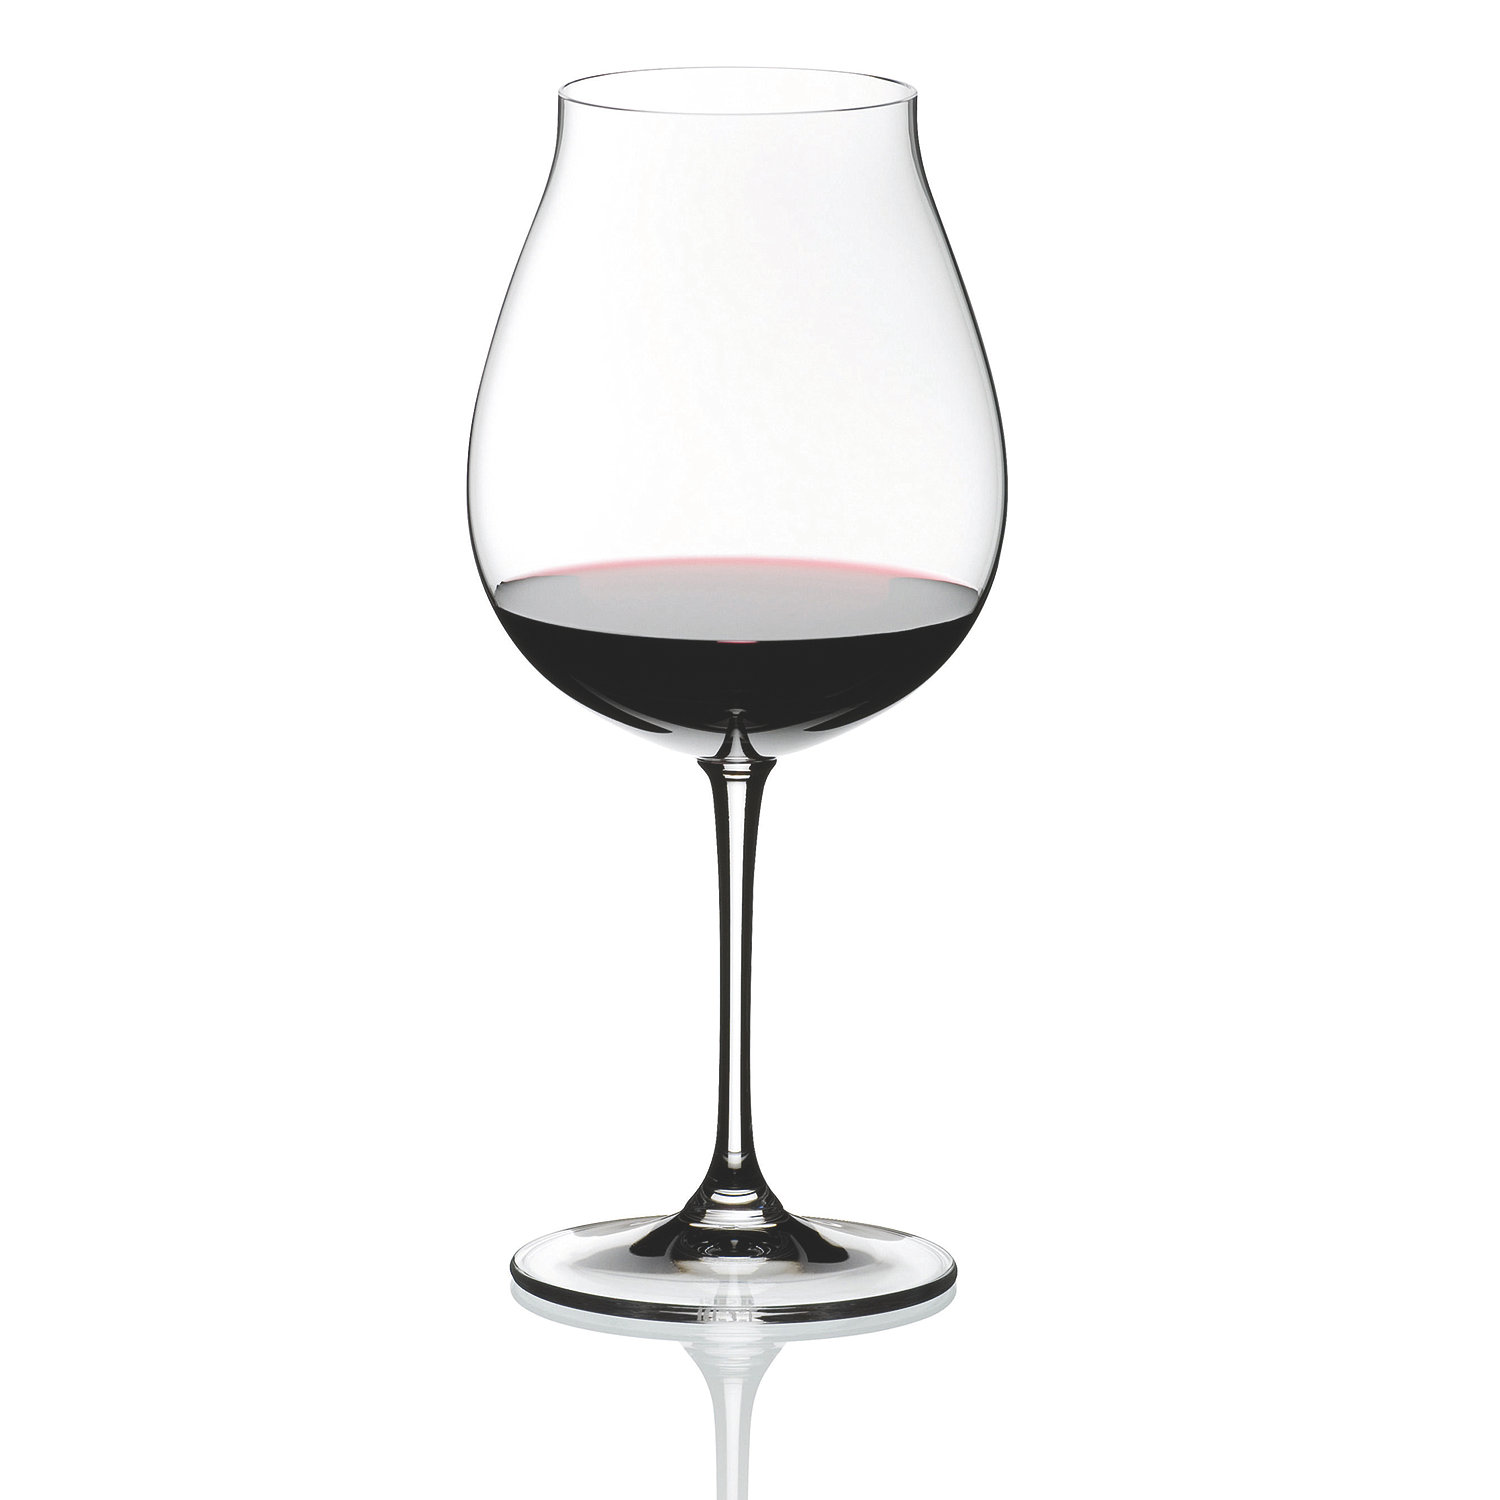 Pinot noir wine glasses